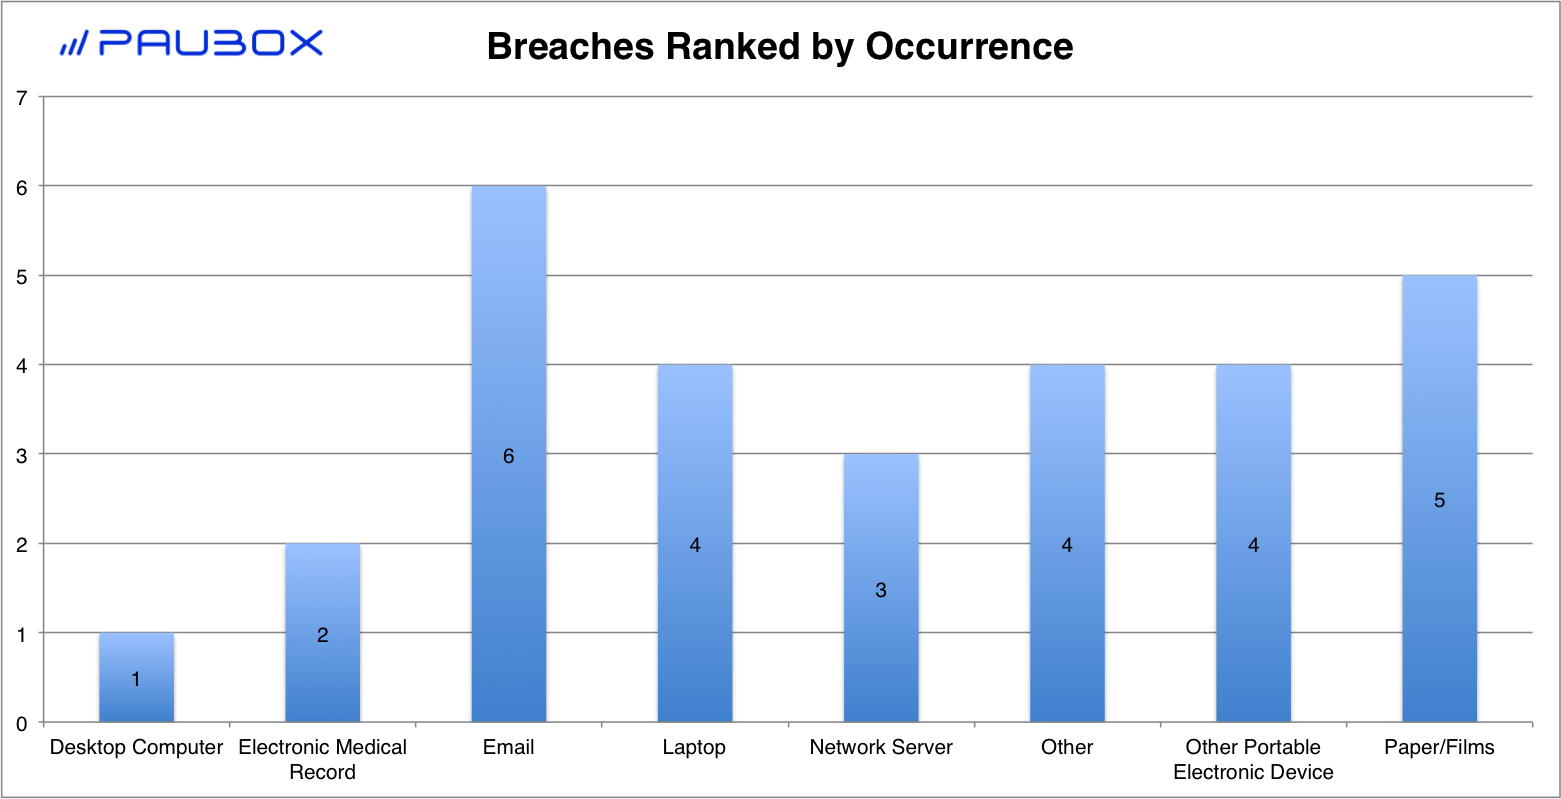 Paubox HIPAA Breach Report: April 2018 - Breaches Ranked by Occurrence